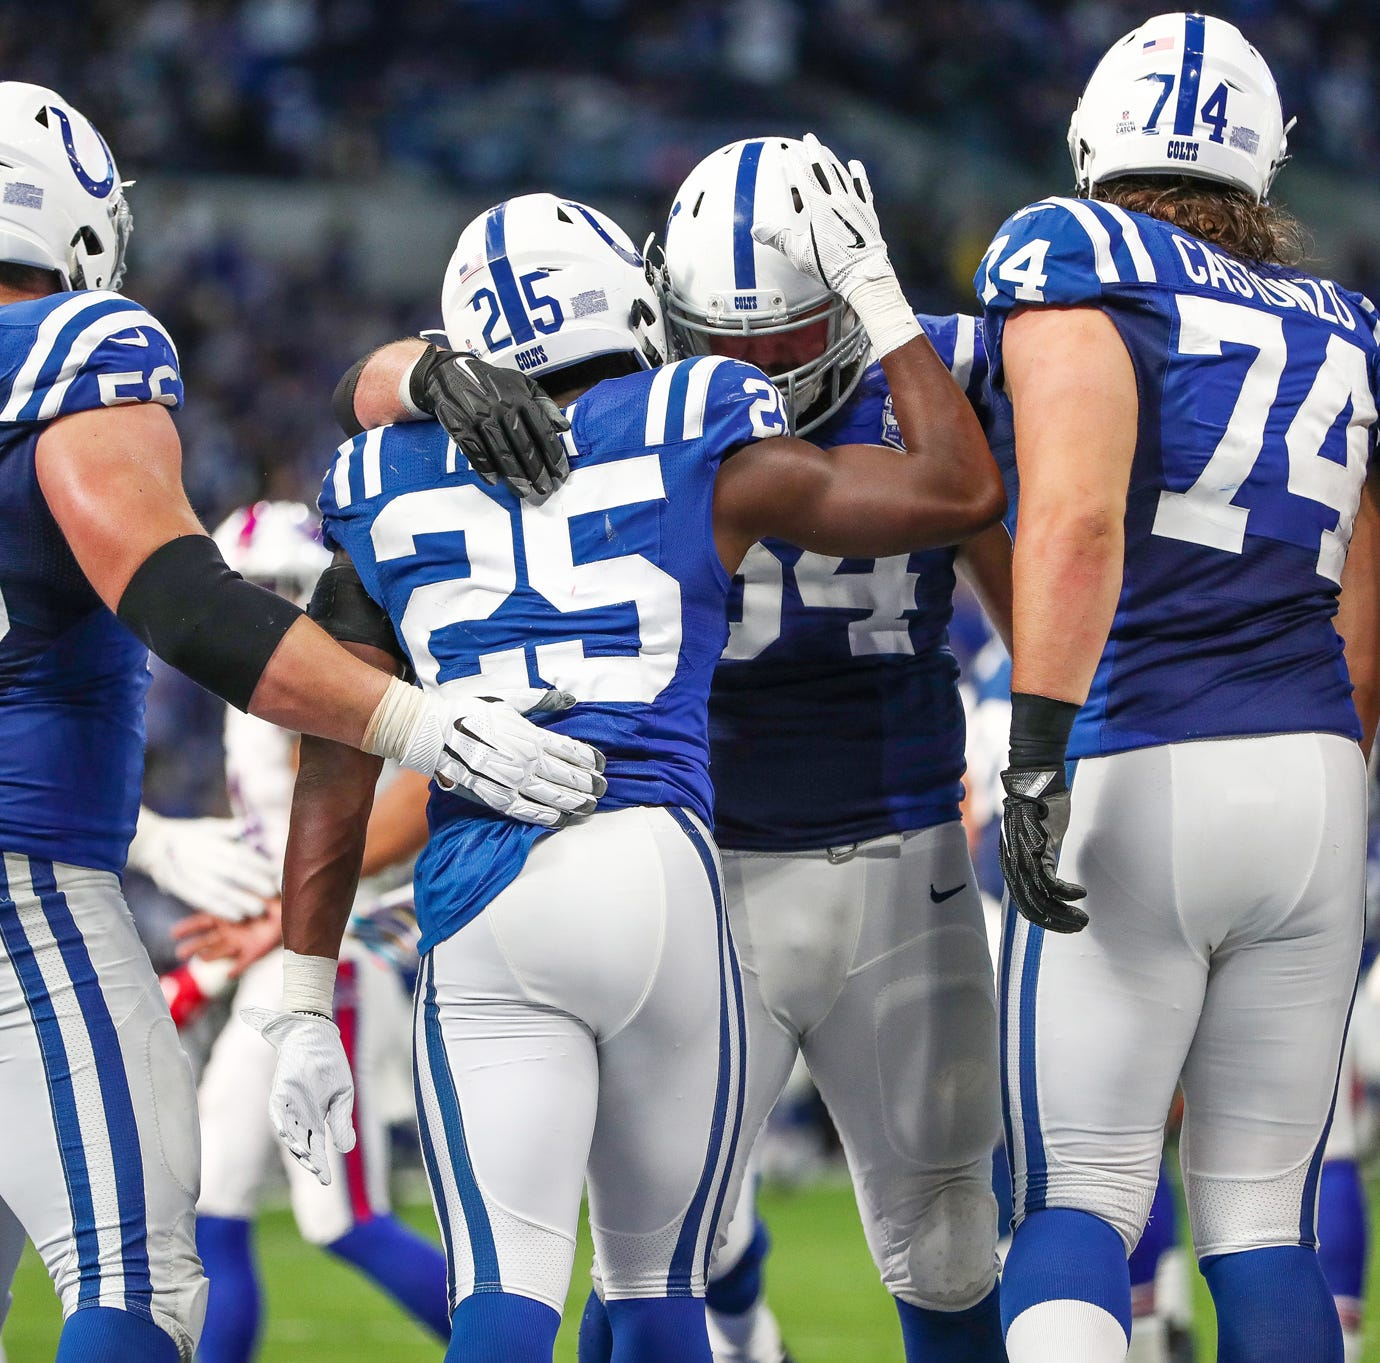 Thumbs Up/Down: Colts offensive line looks legit, new defenders stepping up